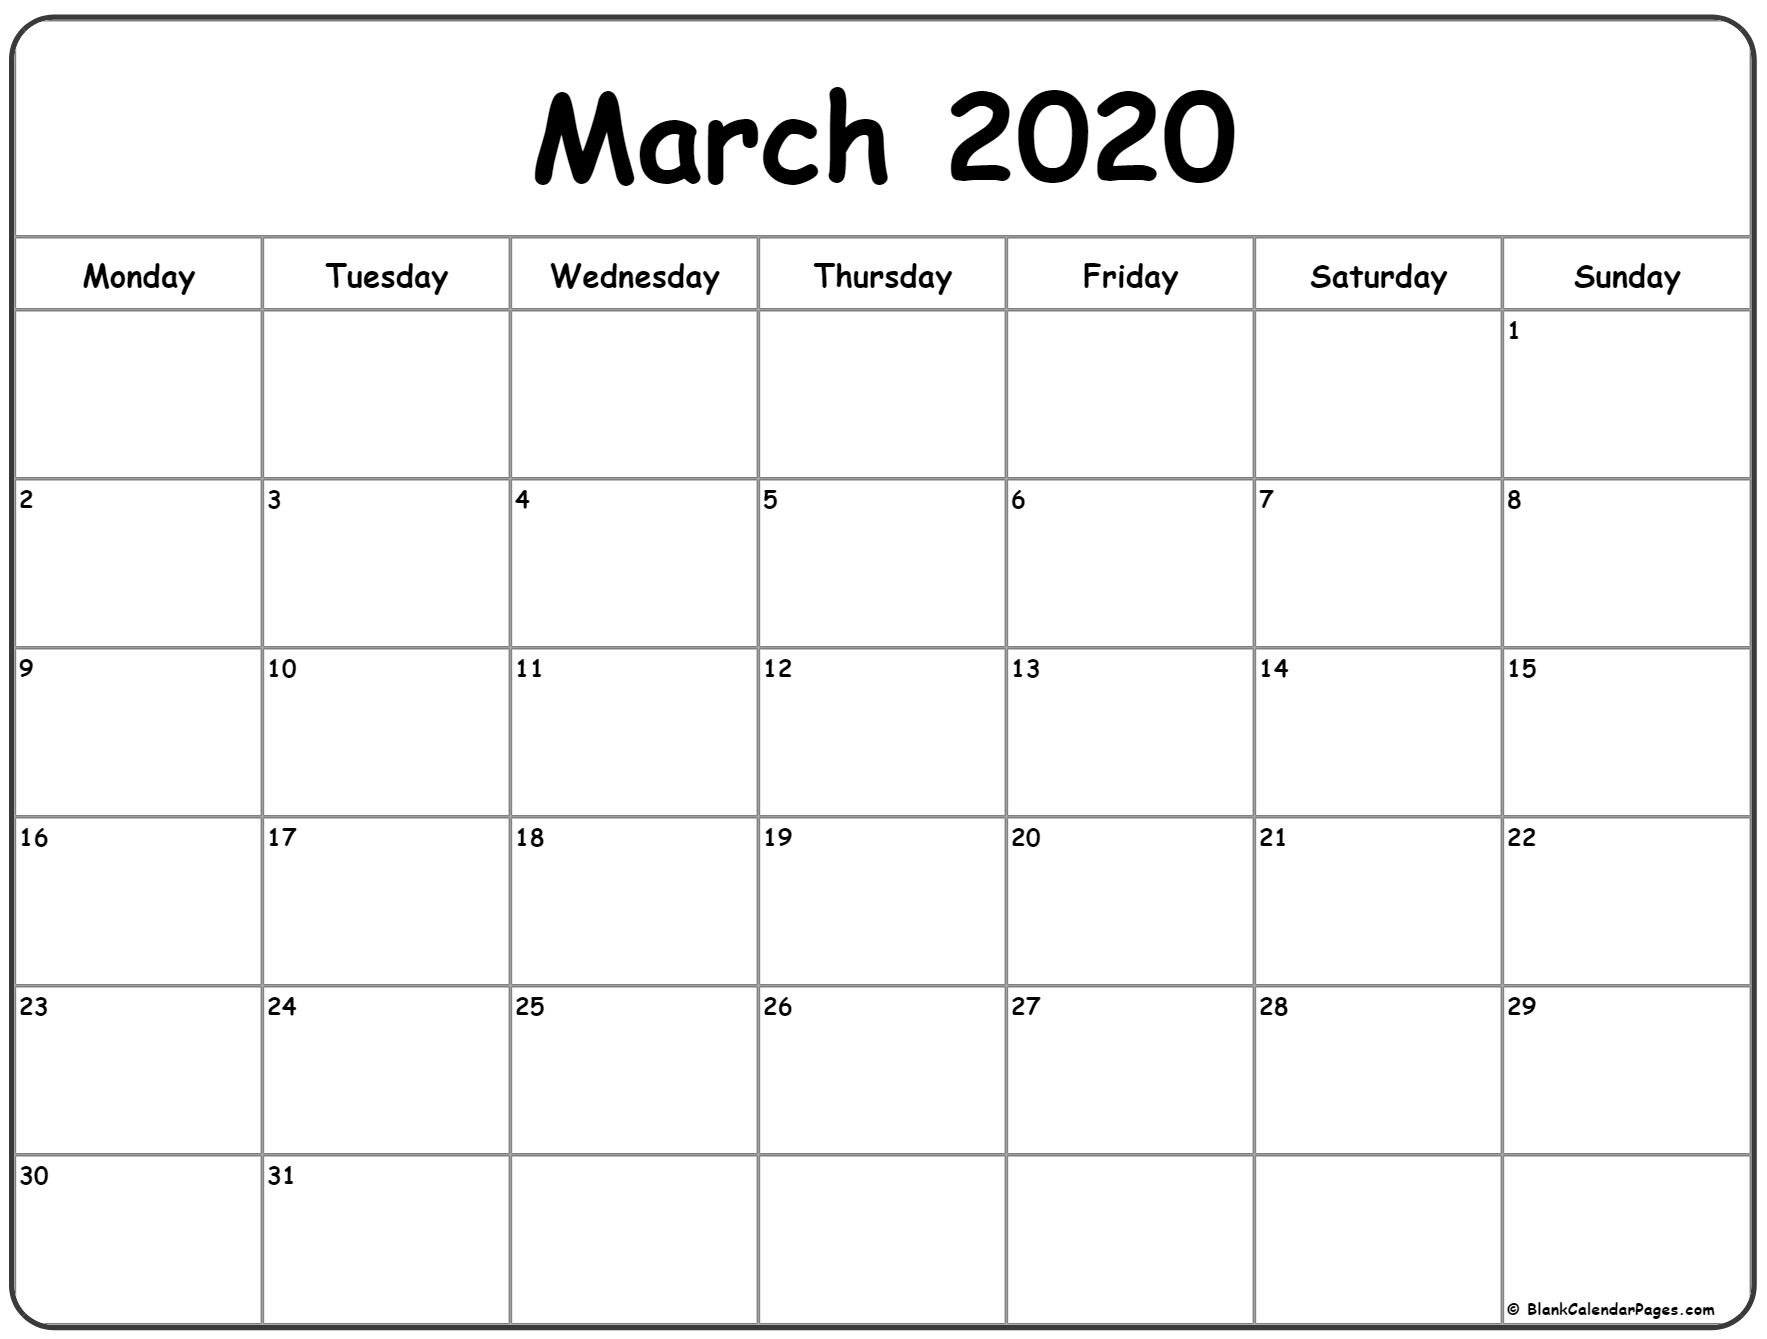 March 2020 Monday Calendar | Monday To Sunday Printable Calender For Mon Through Friday